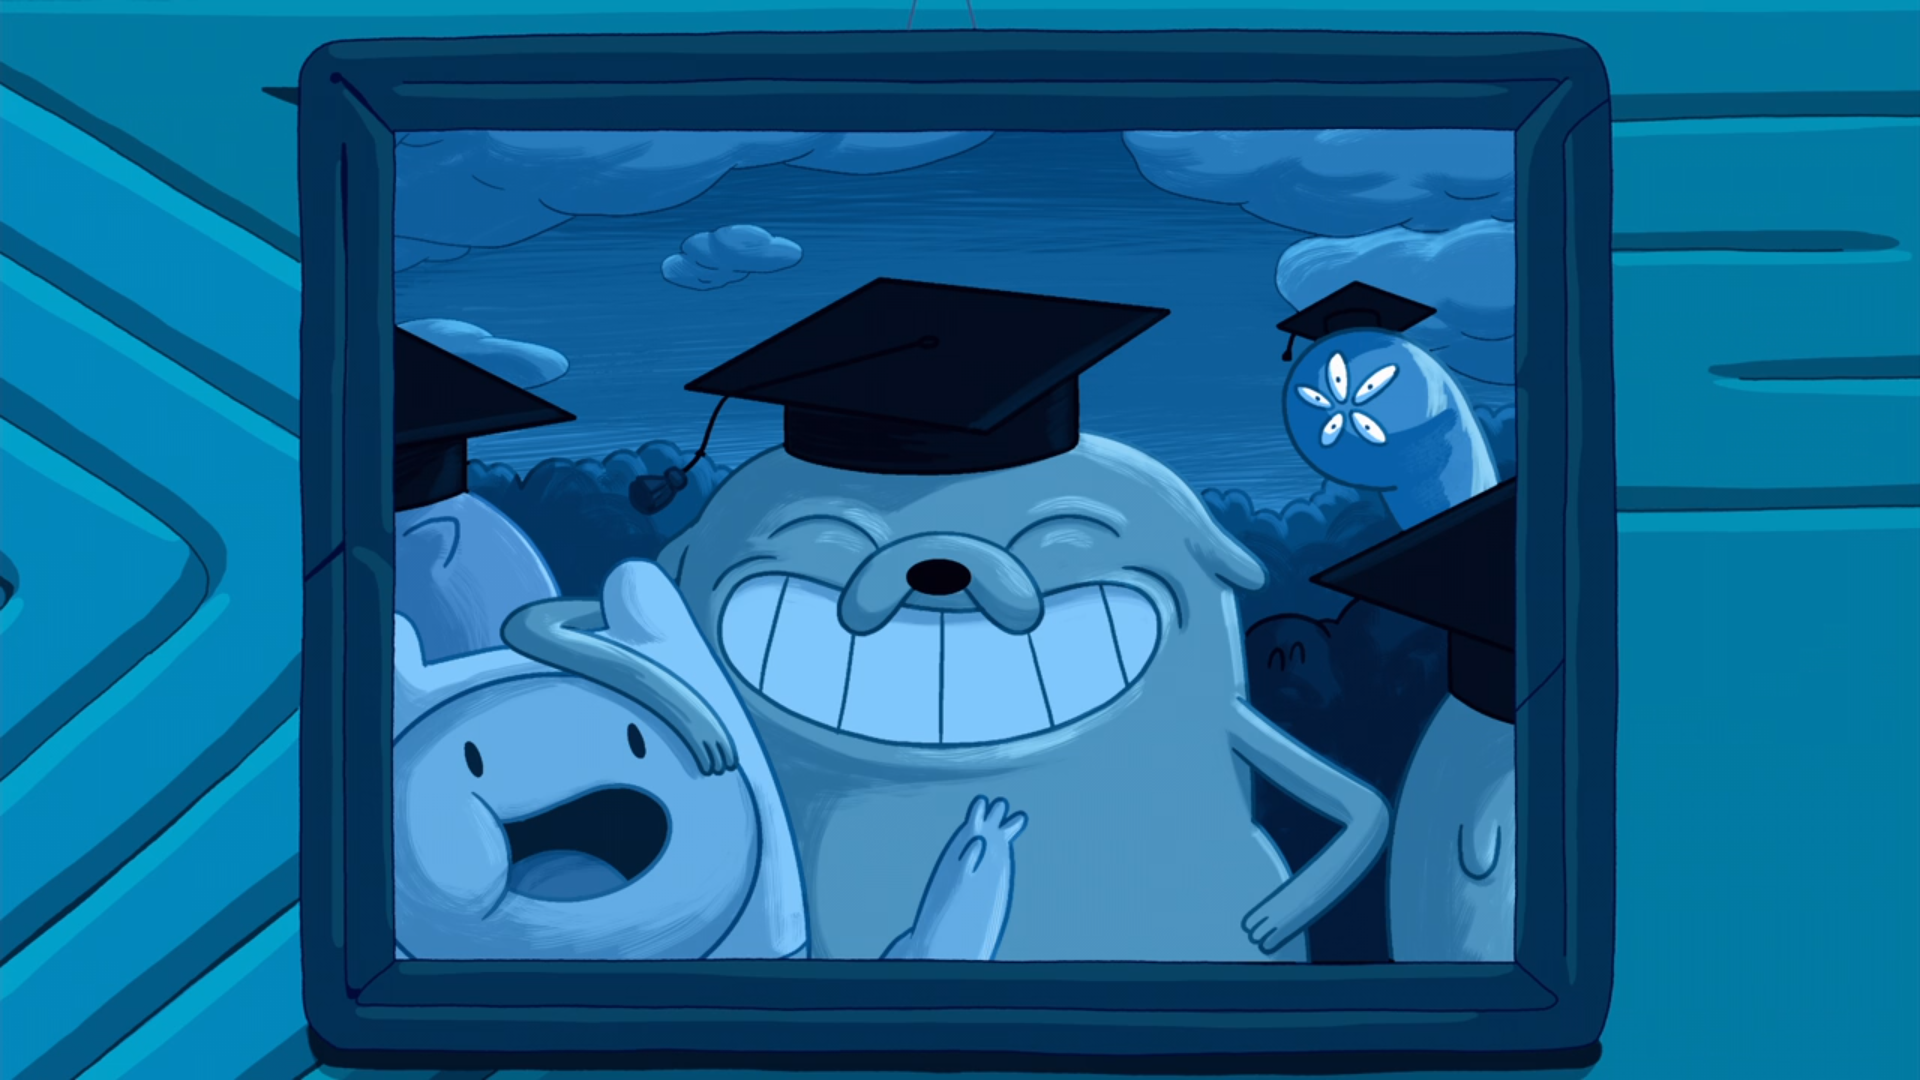 S9e10 Finn Jake graduation Warren Ampersand